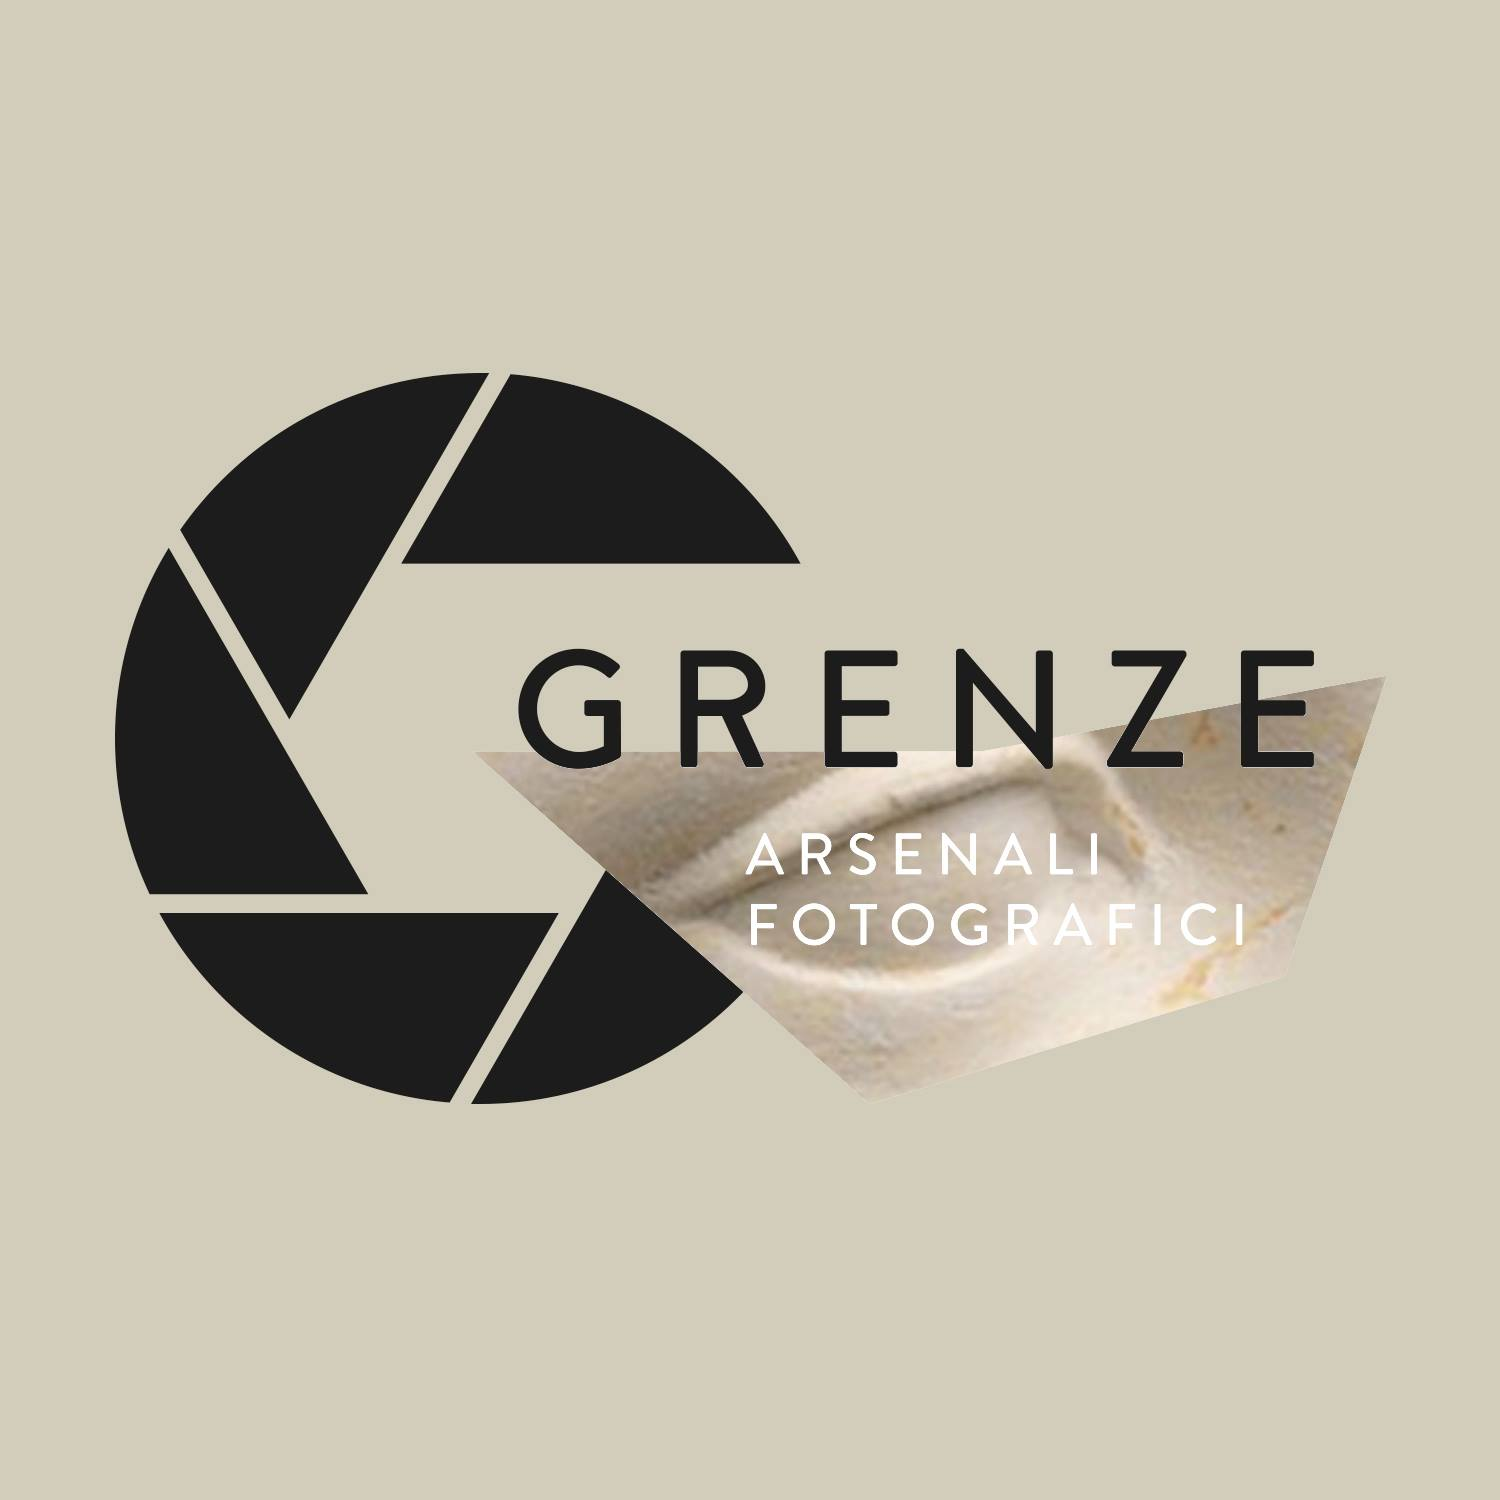 3rd Edition of Grenze - Photographic Arsenals - en